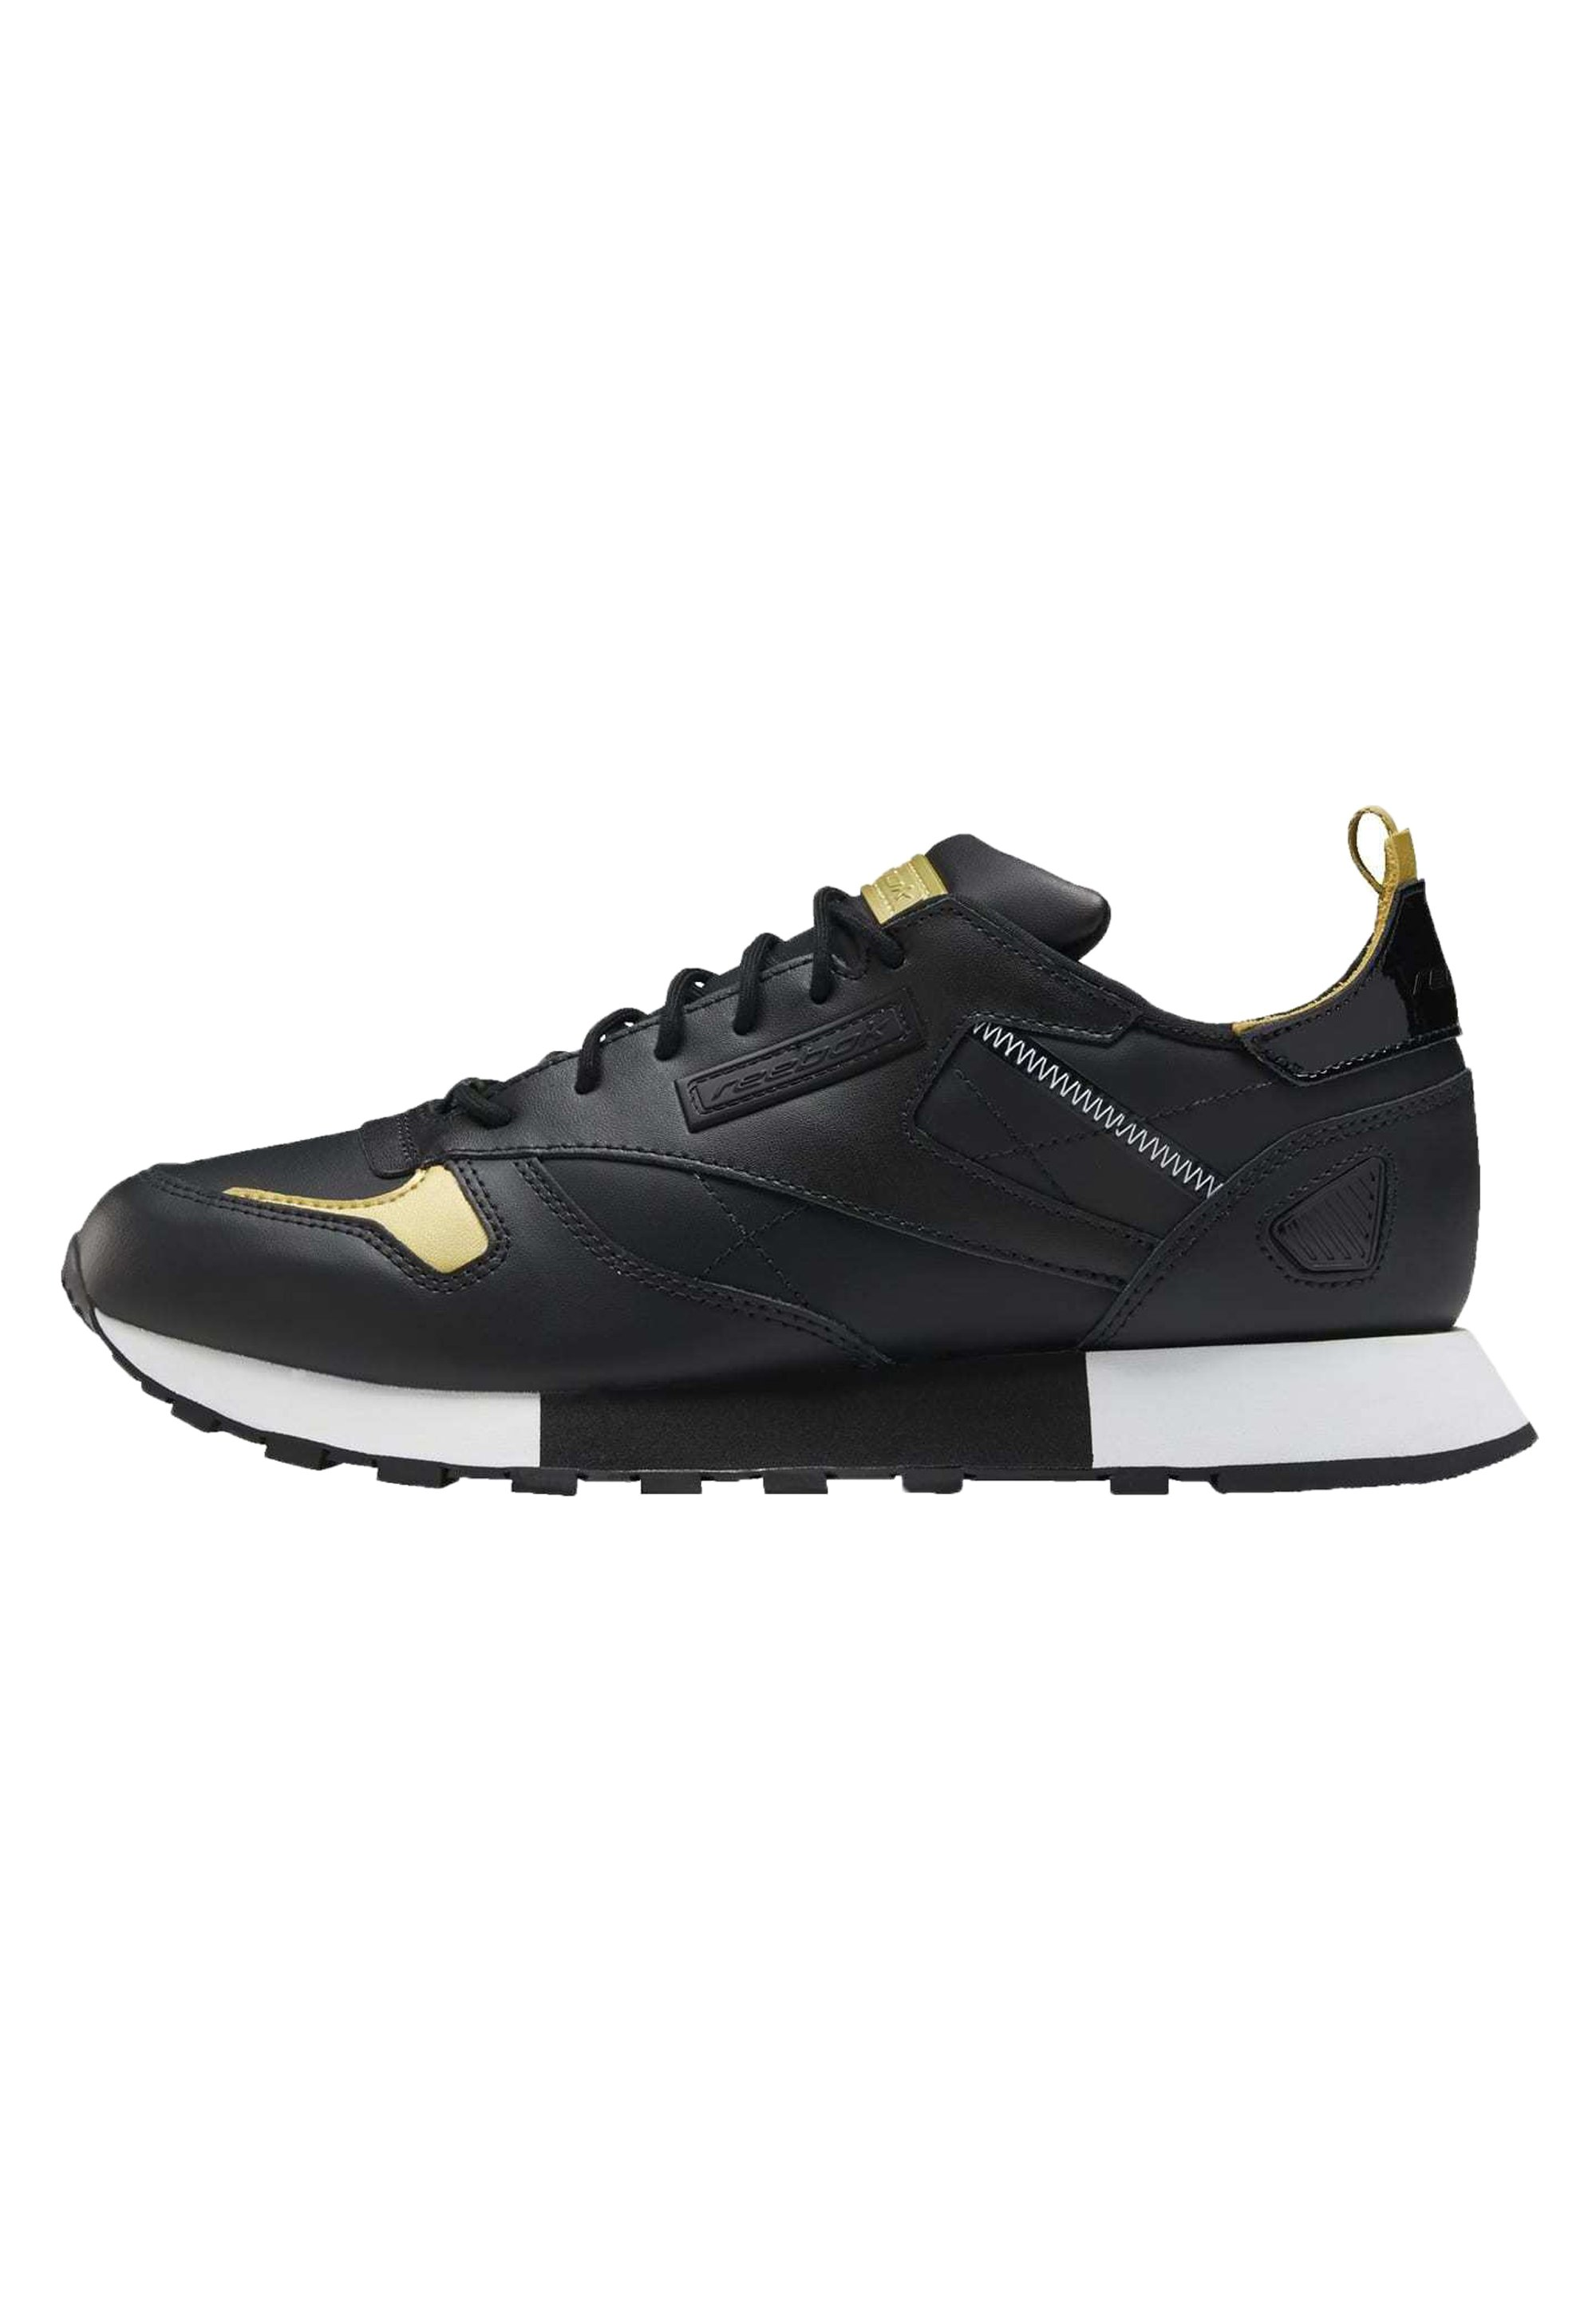 Reebok Classic Leather Ree:dux Shoes - Sneakers Basse Black Mgt7CKM